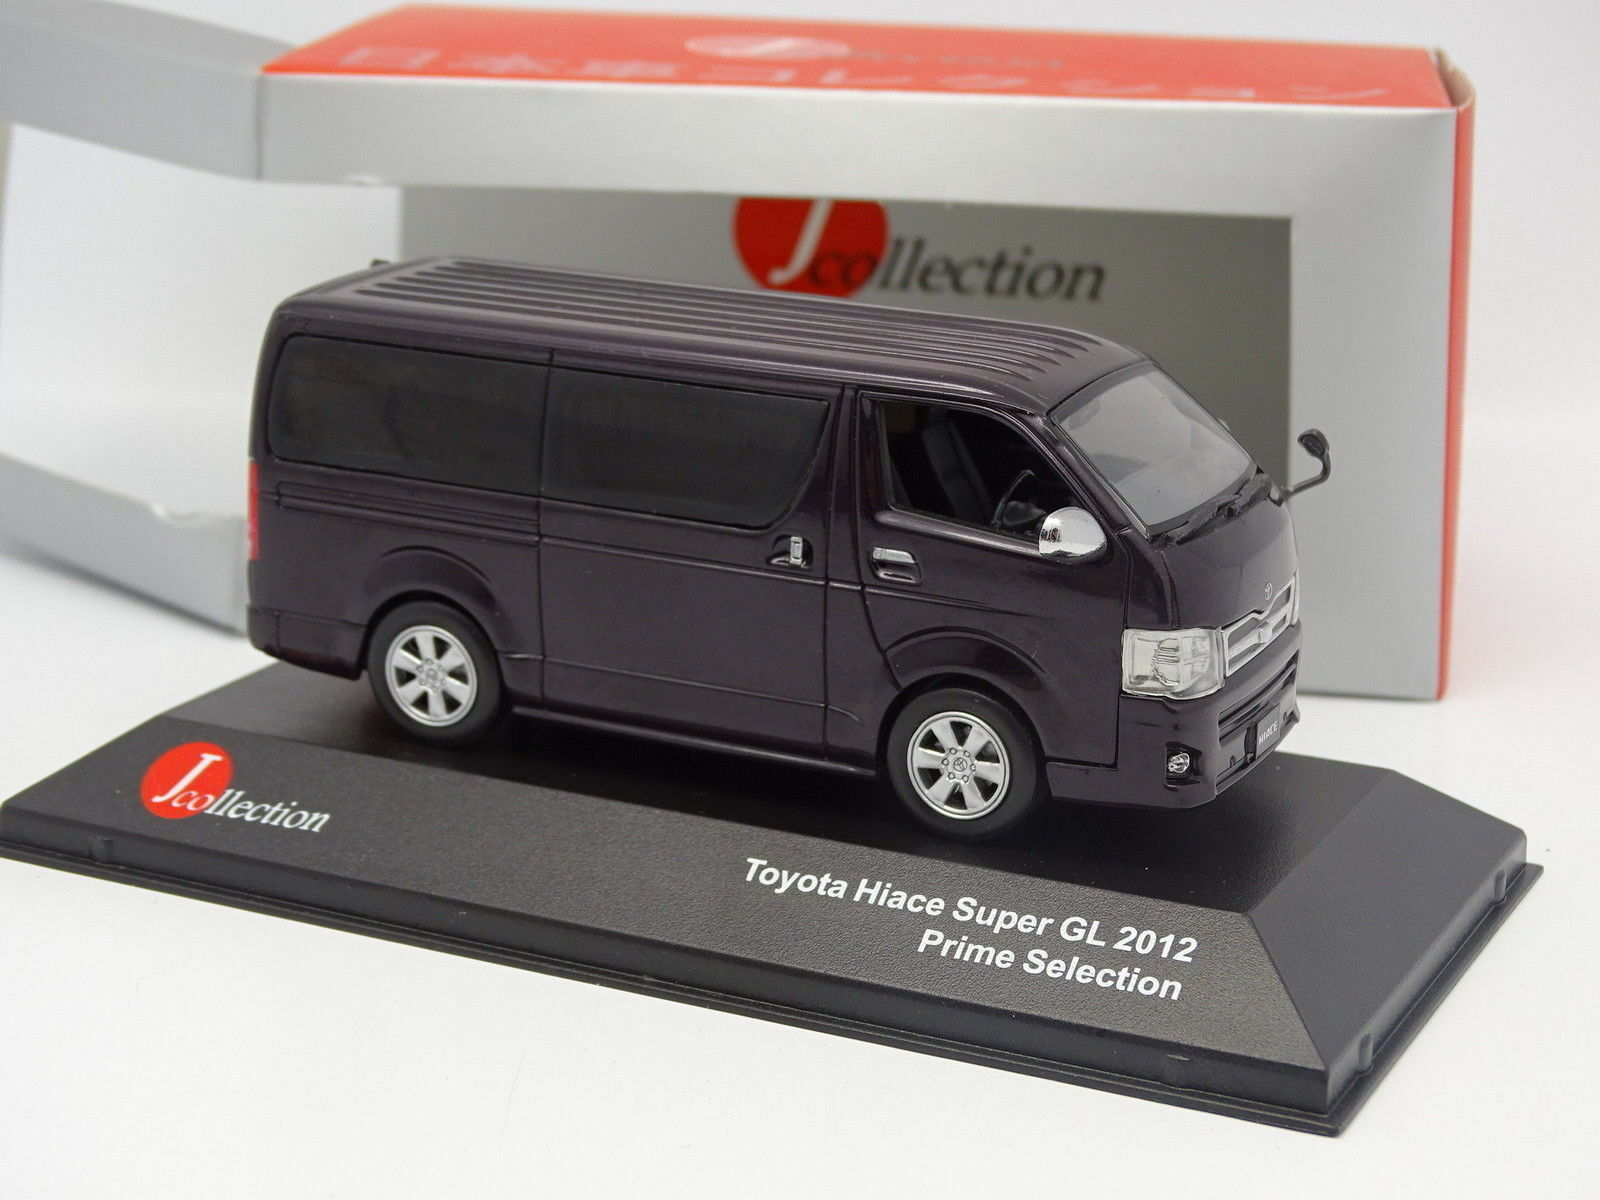 J Collection 1 43 - Toyota Hiace Super GL 2012